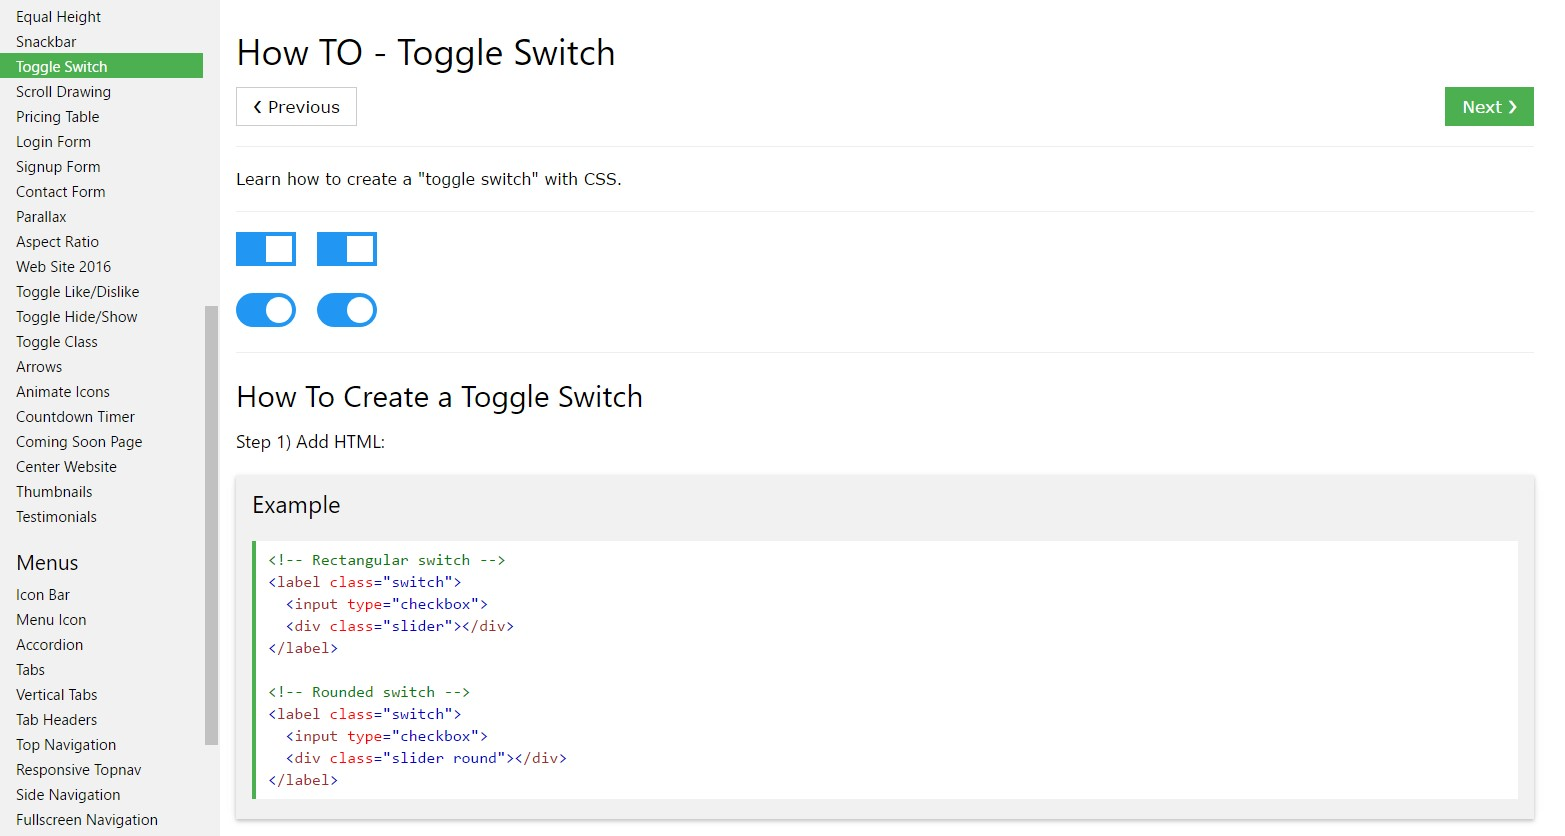 Tips on how to  produce Toggle Switch